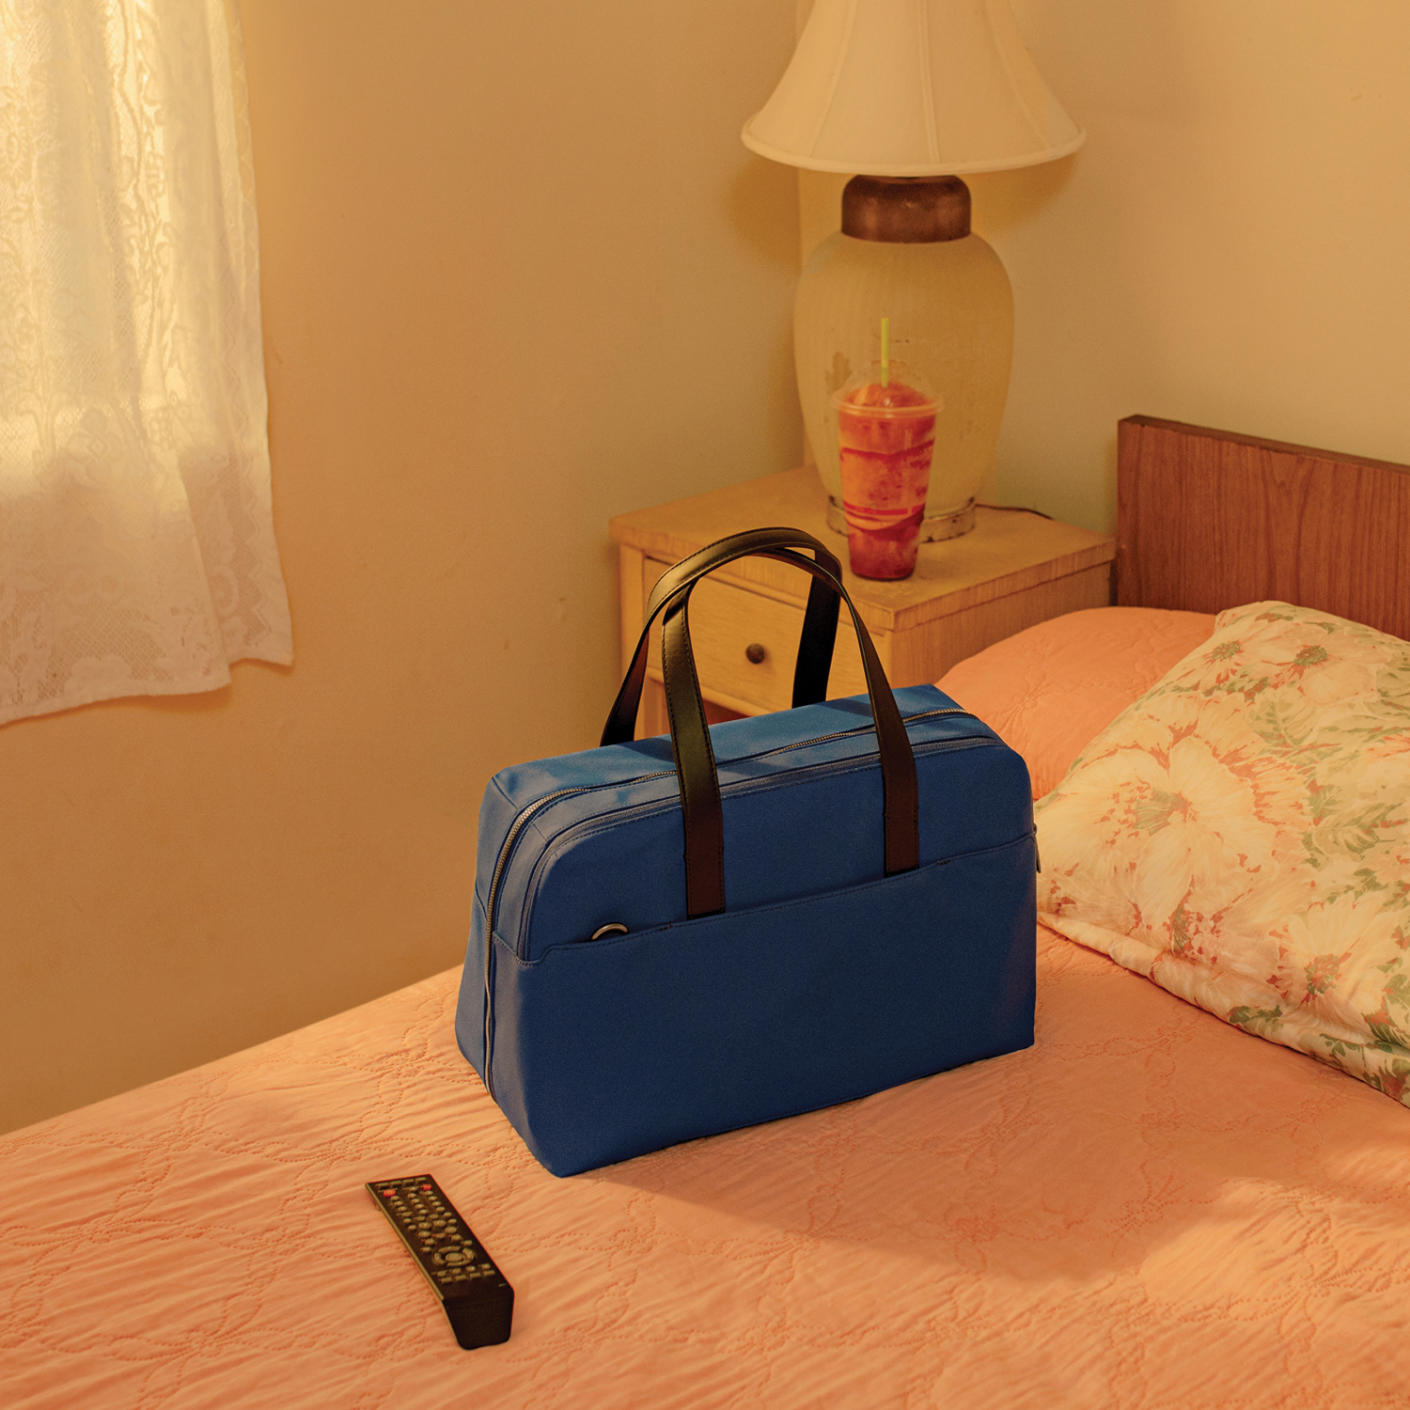 A blue duffle bag with black straps raised, on a neatly made bed and a TV remote on the side.